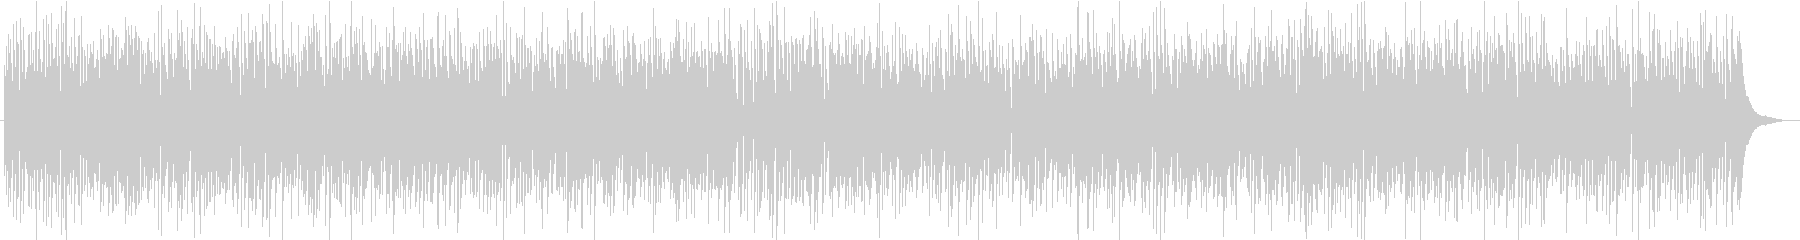 Live music Sax Jazz bossa nova fashionable cafe's unreproduced waveform